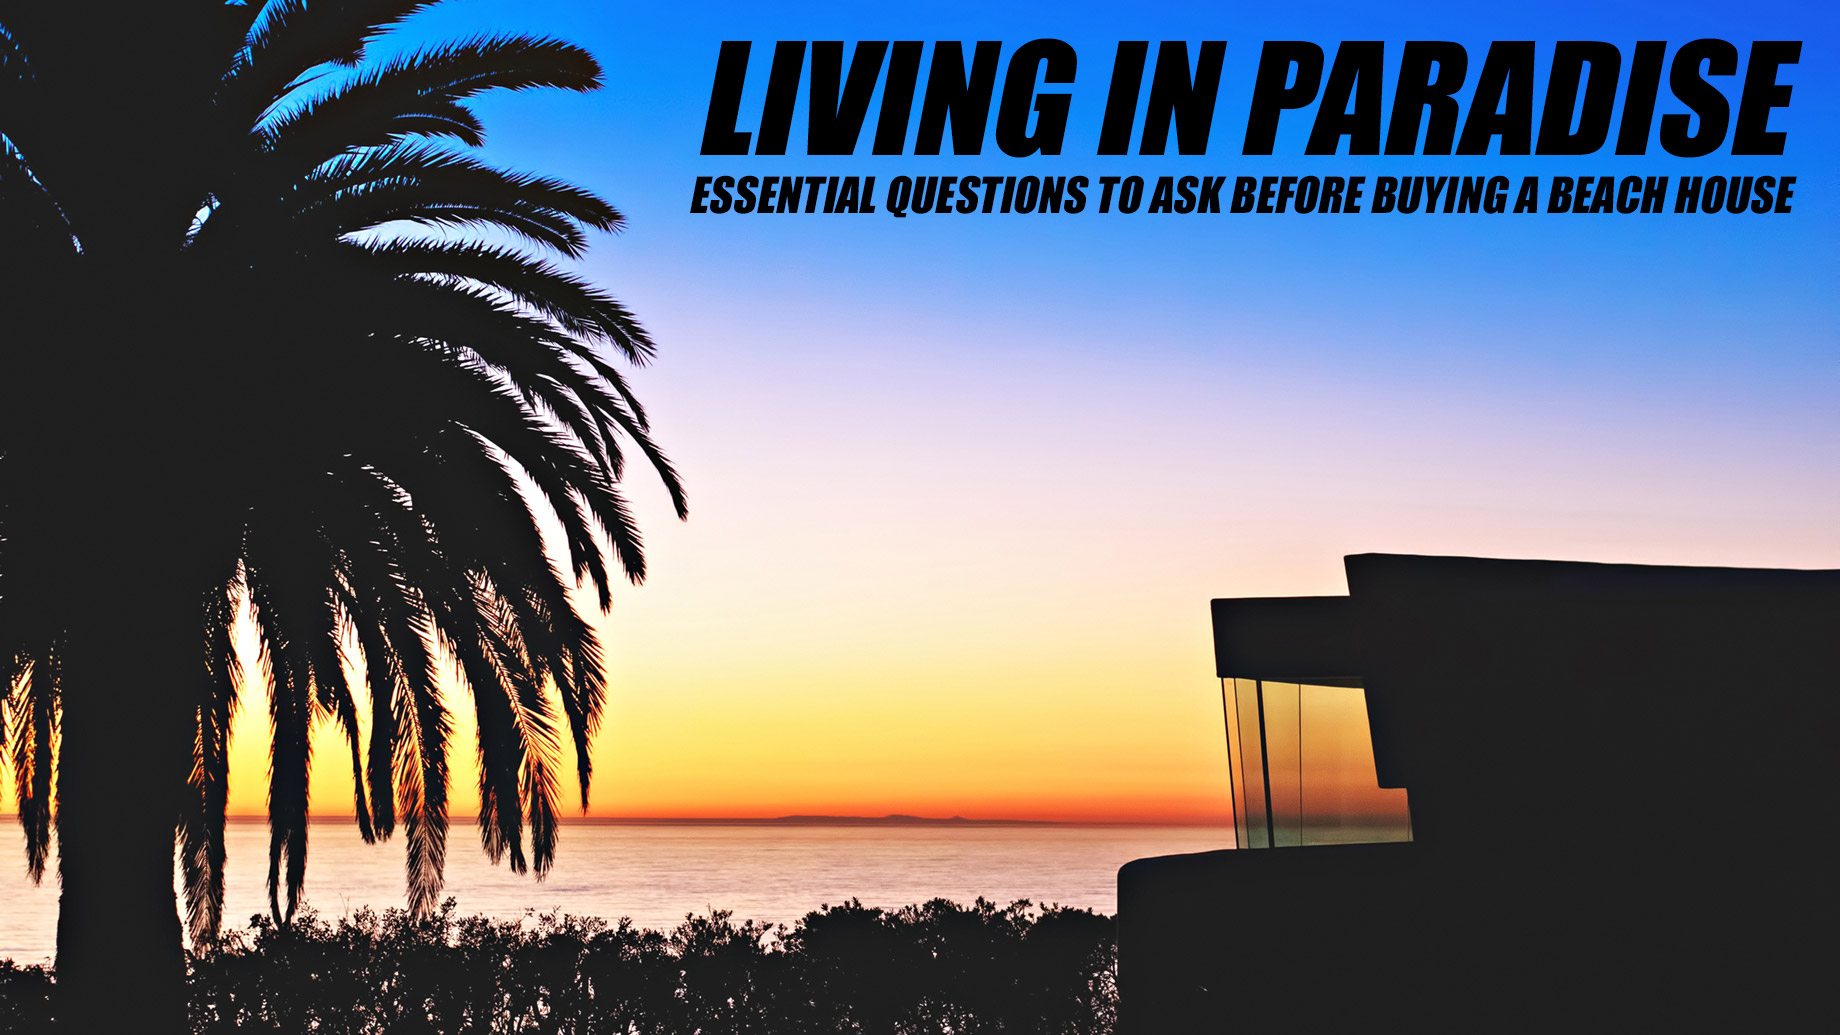 Living in Paradise - Essential Questions to Ask Before Buying a Beach House